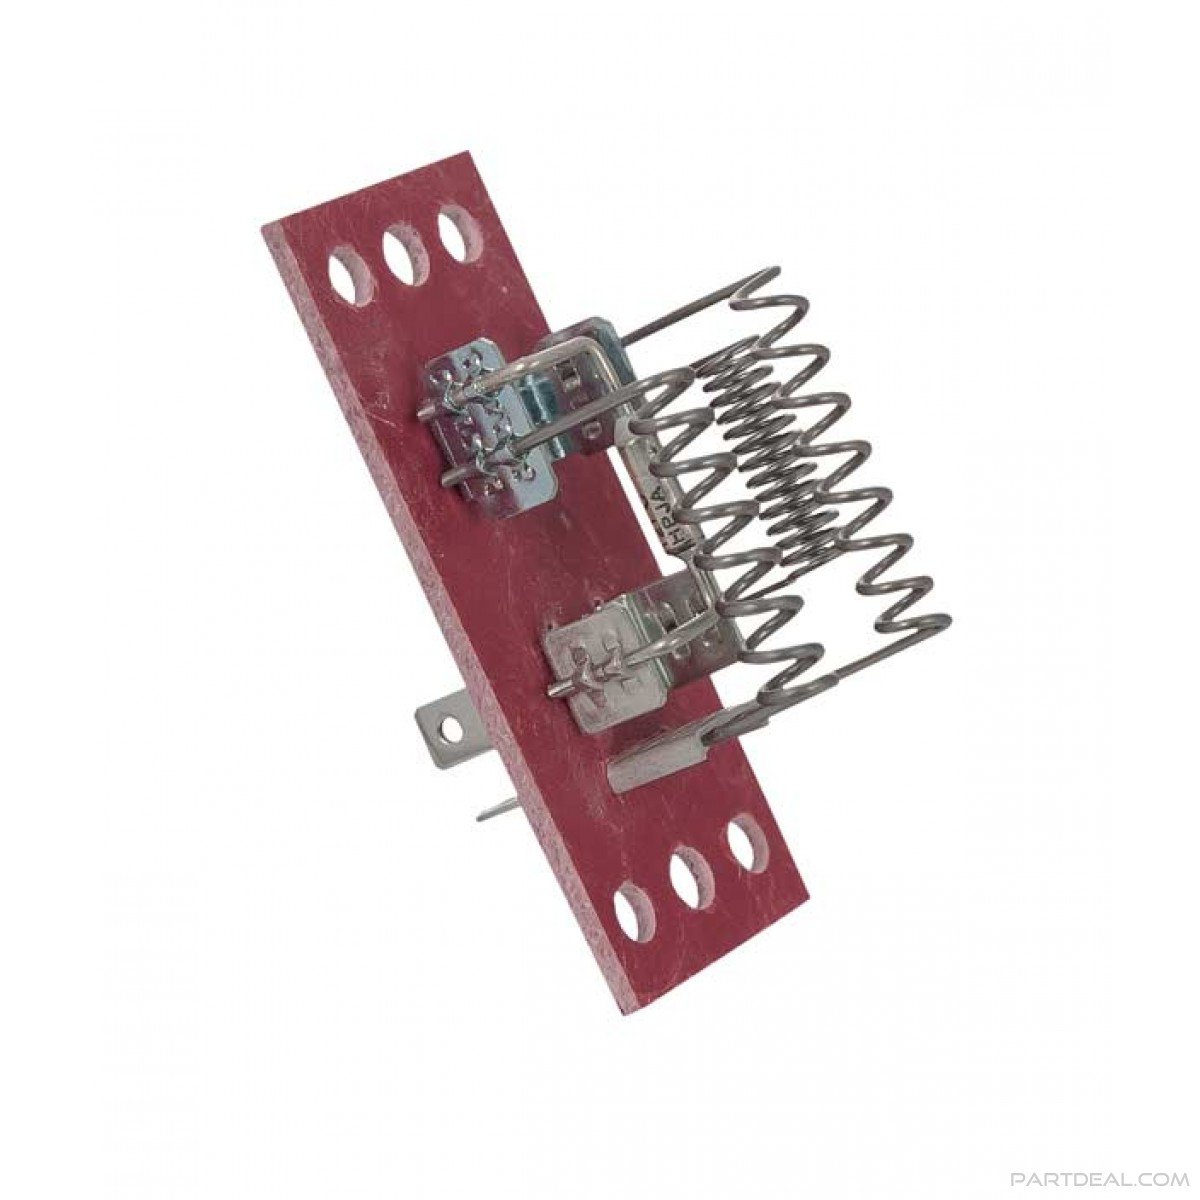 MEI AIRSOURCE 1224 RESISTOR